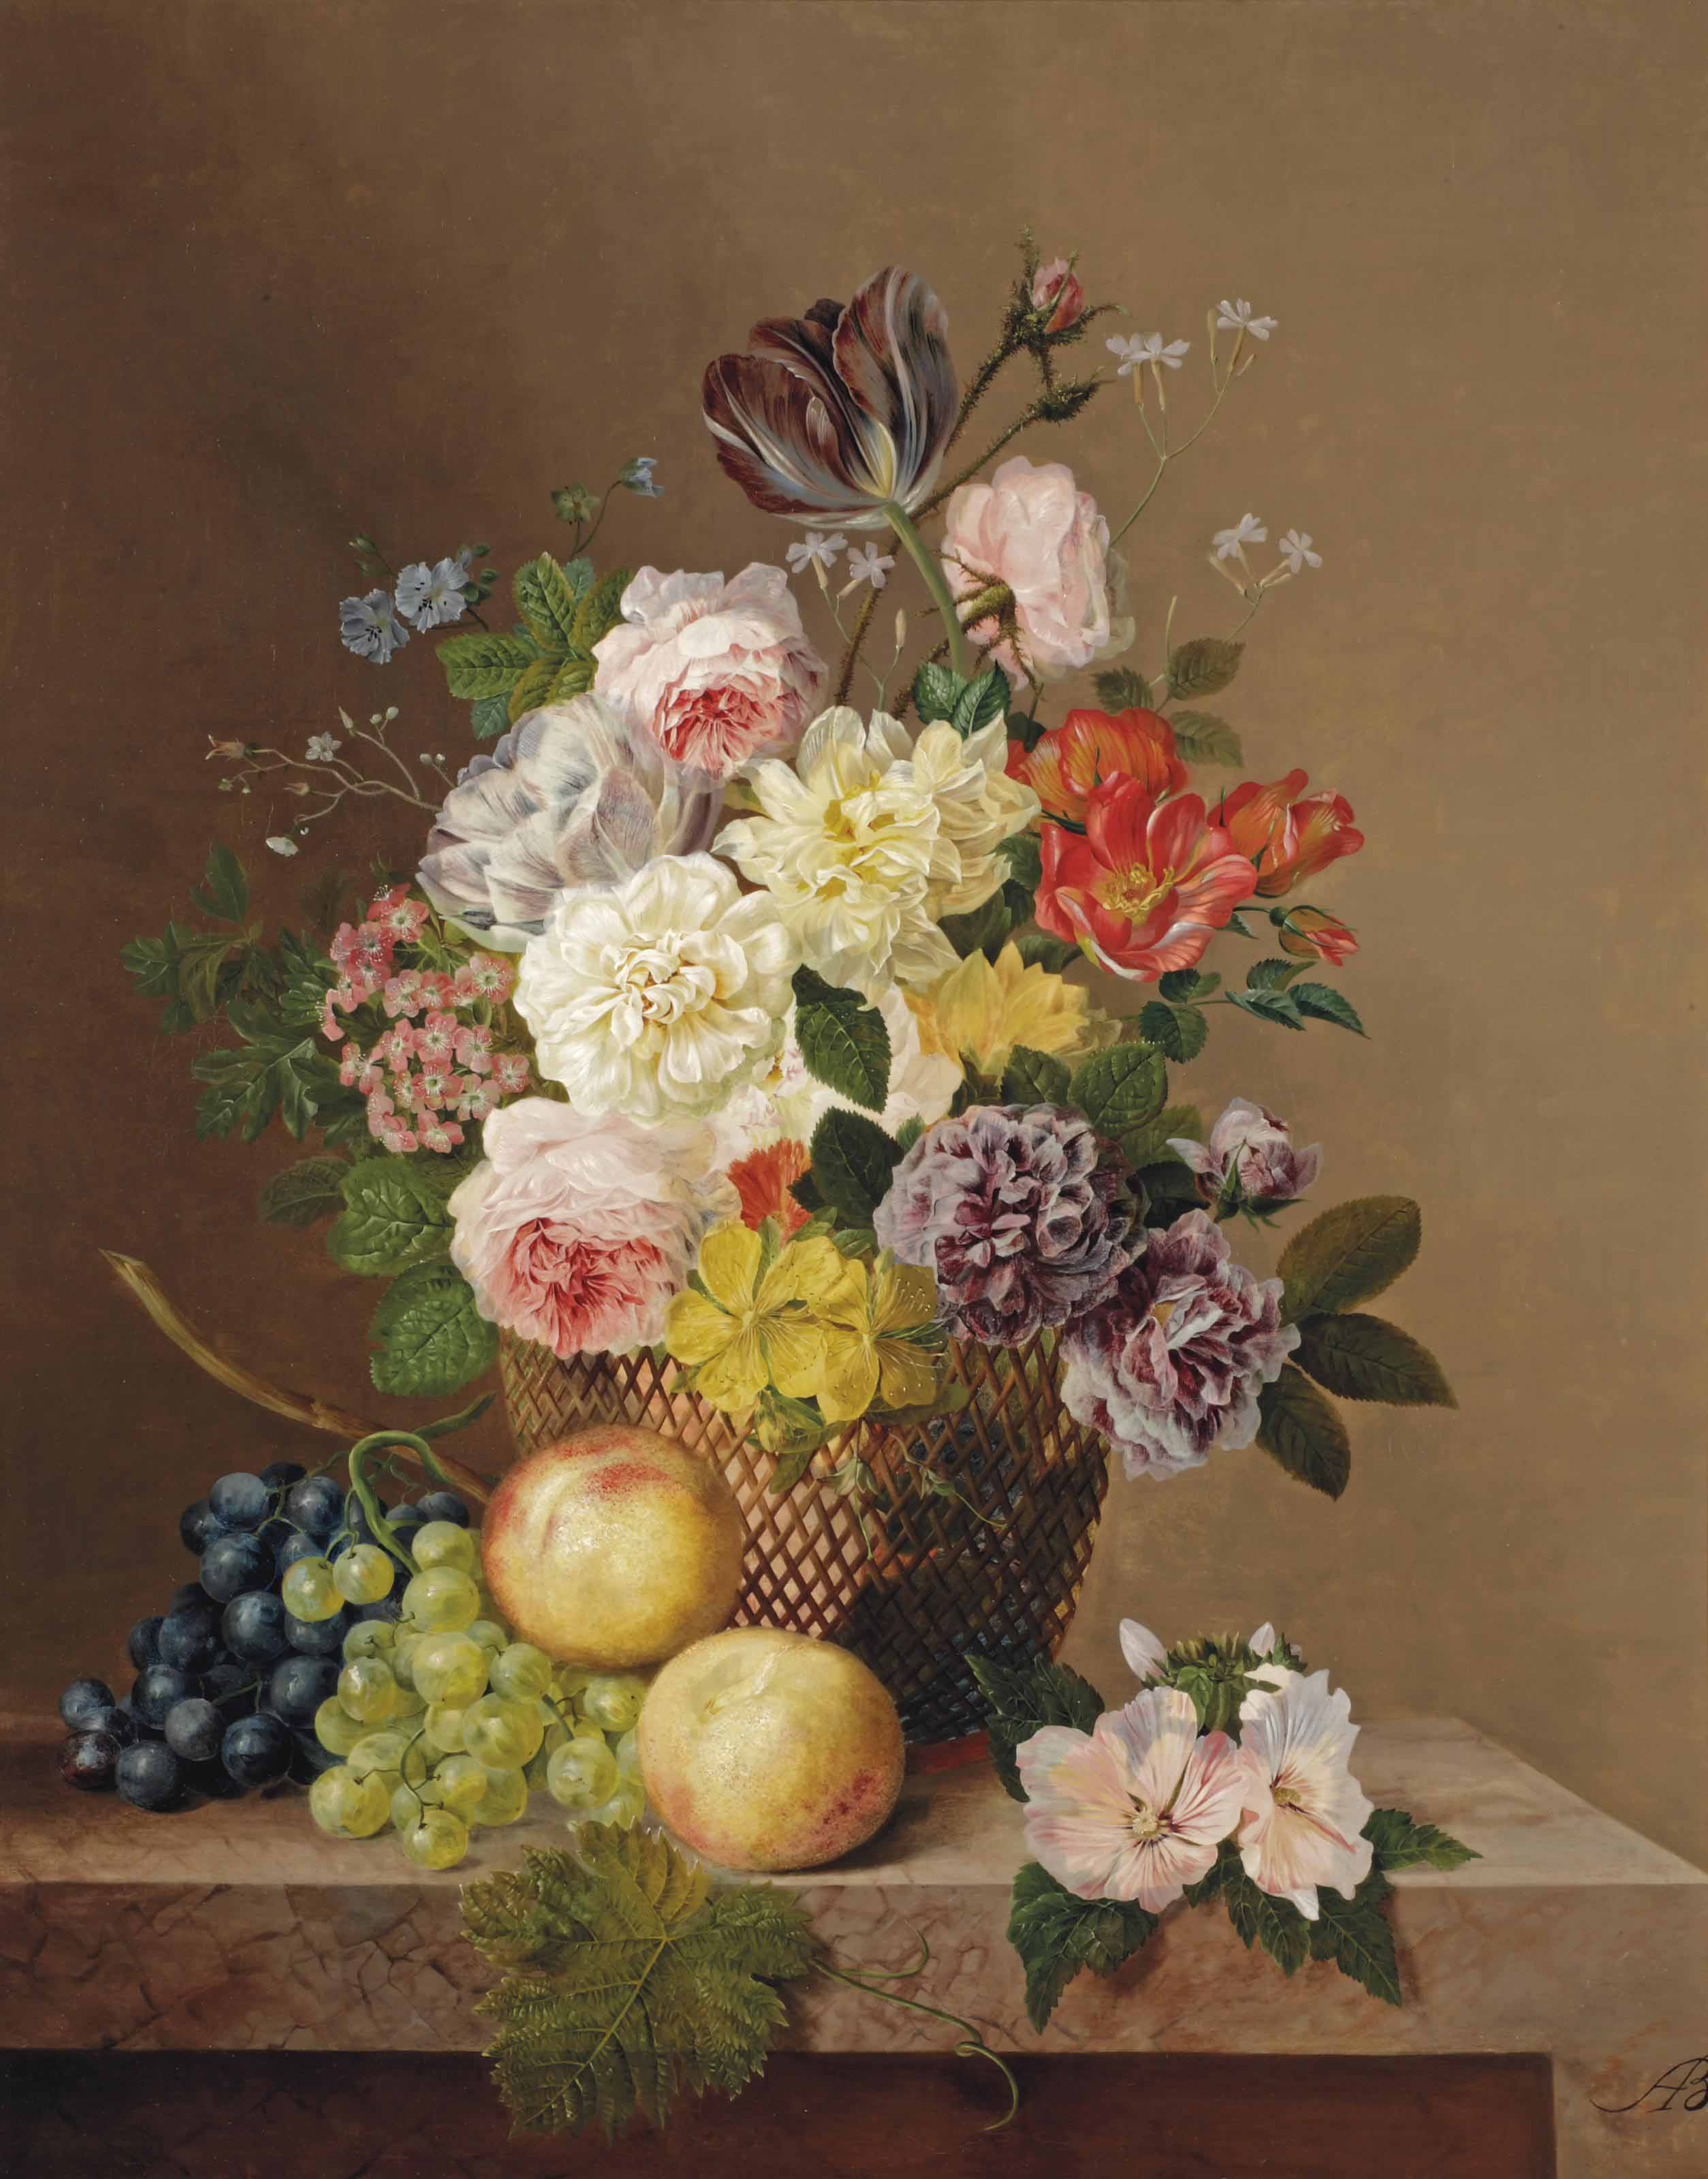 Summer flowers in a vase with grapes and peaches on a marble ledge